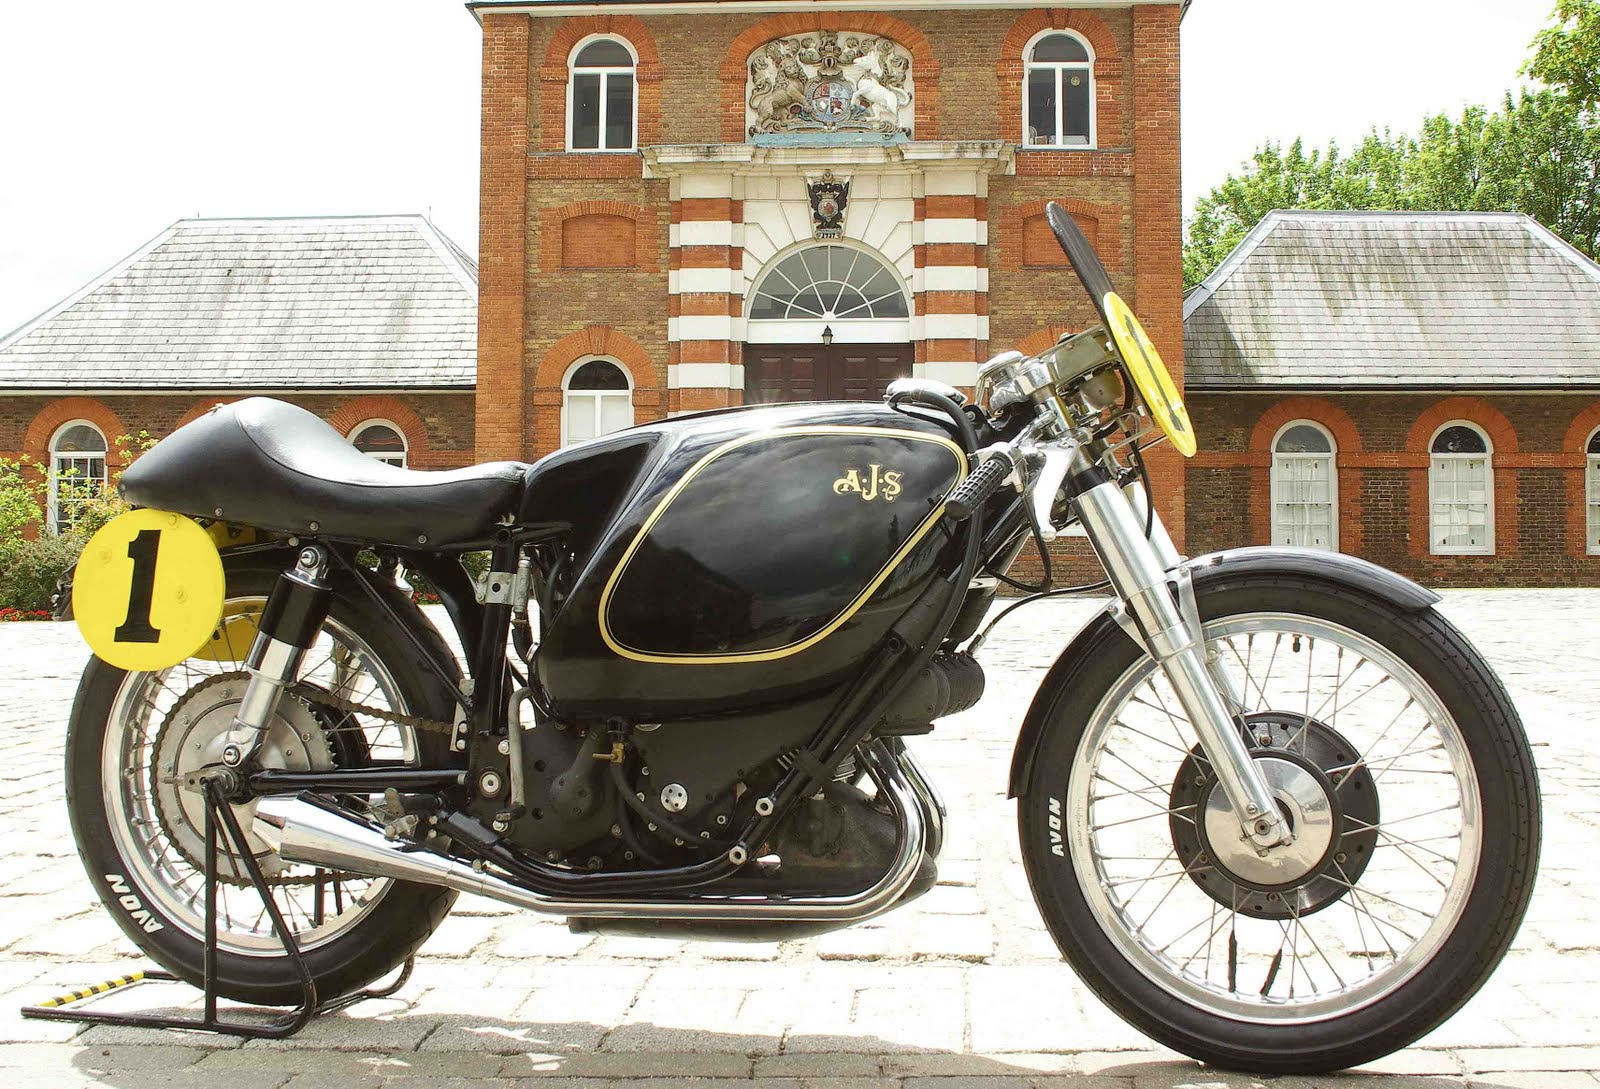 1949-e90-ajs-porcupine-7000000_expensive-motorcycles